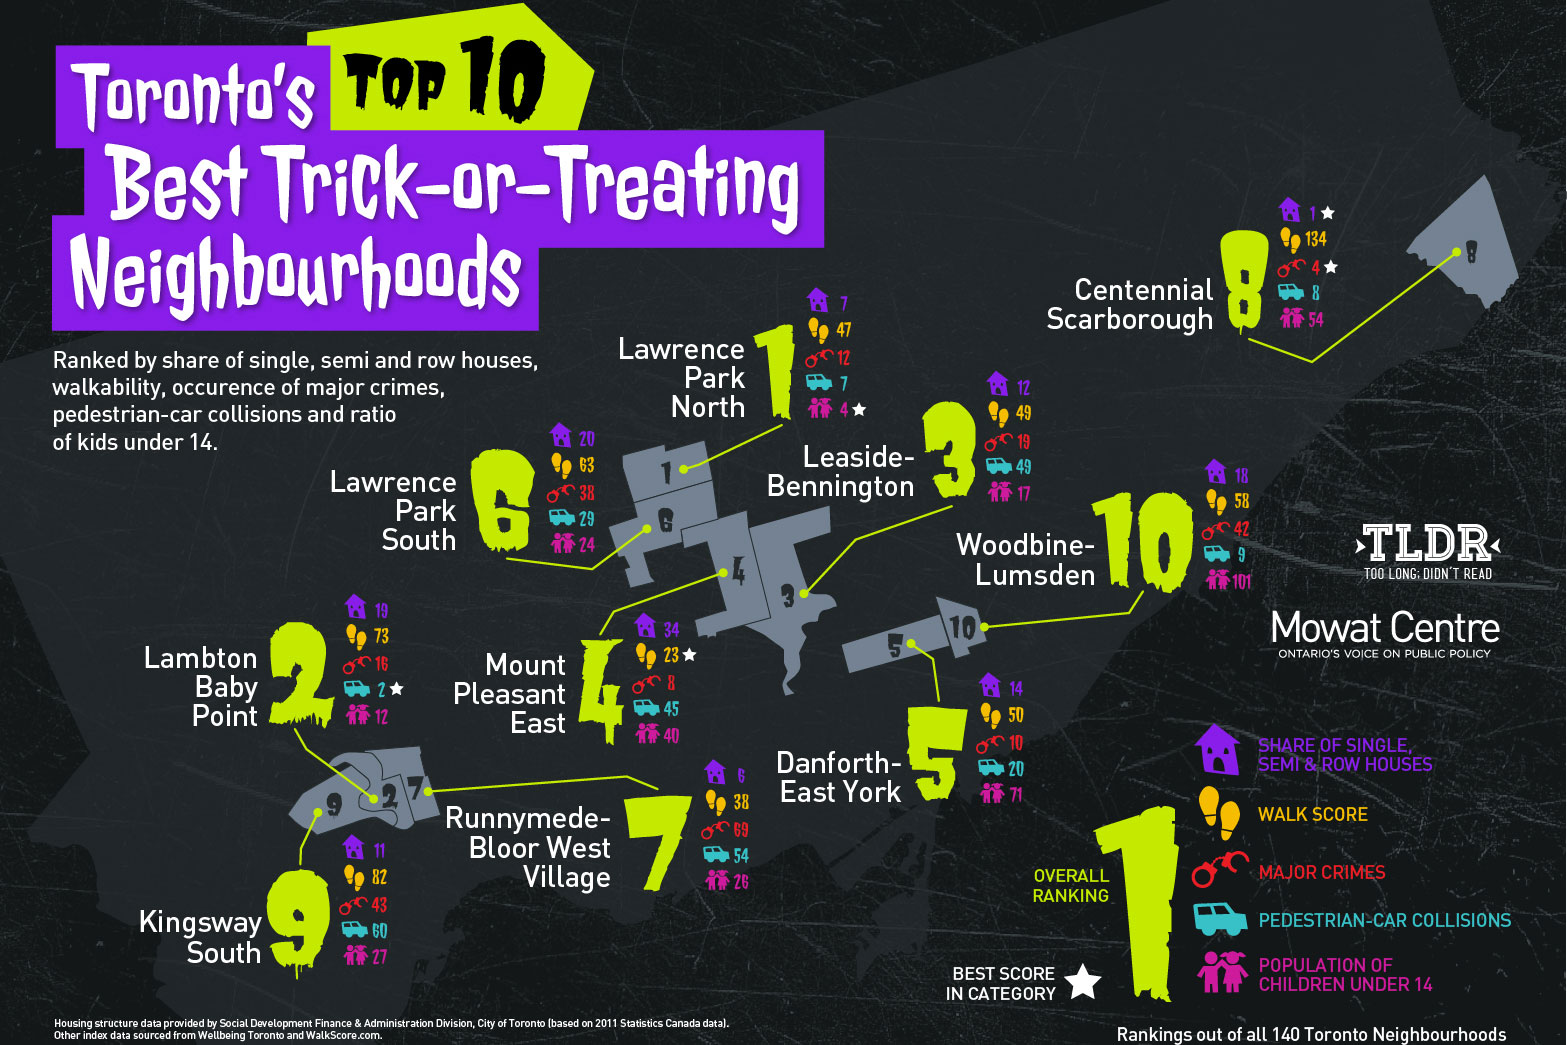 Mowat Centre details the best neighbourboods in Toronto to go trick-or-treating. SOURCE: mowatcentre.ca